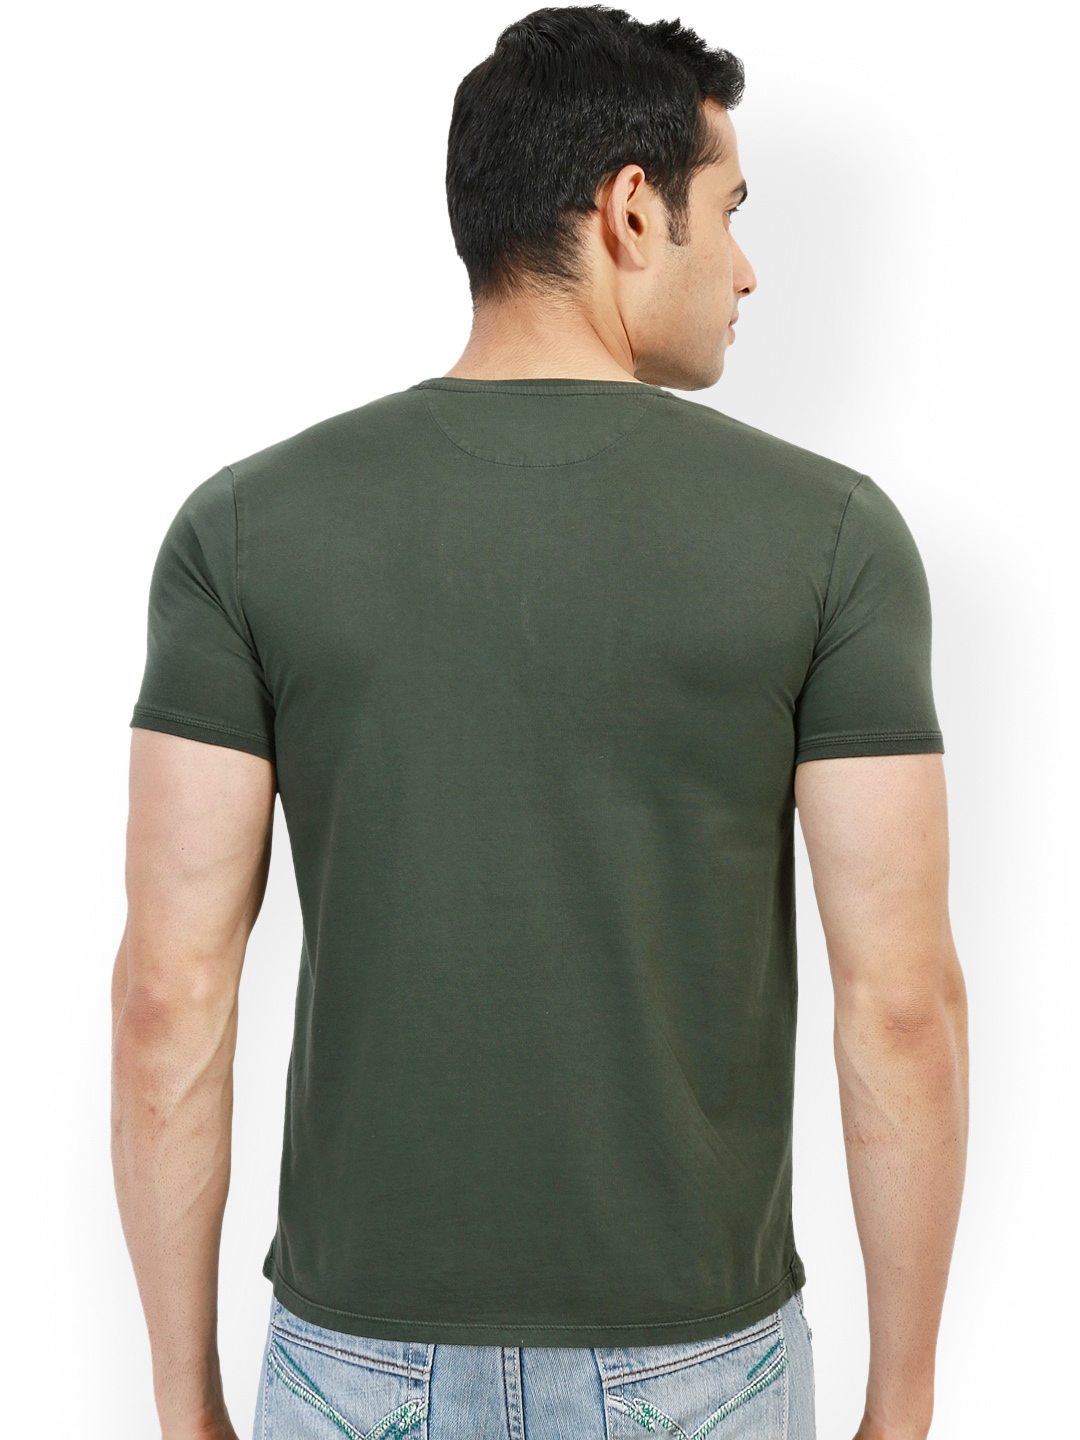 Myntra design classics olive green printed slim fit t for Myntra t shirt design